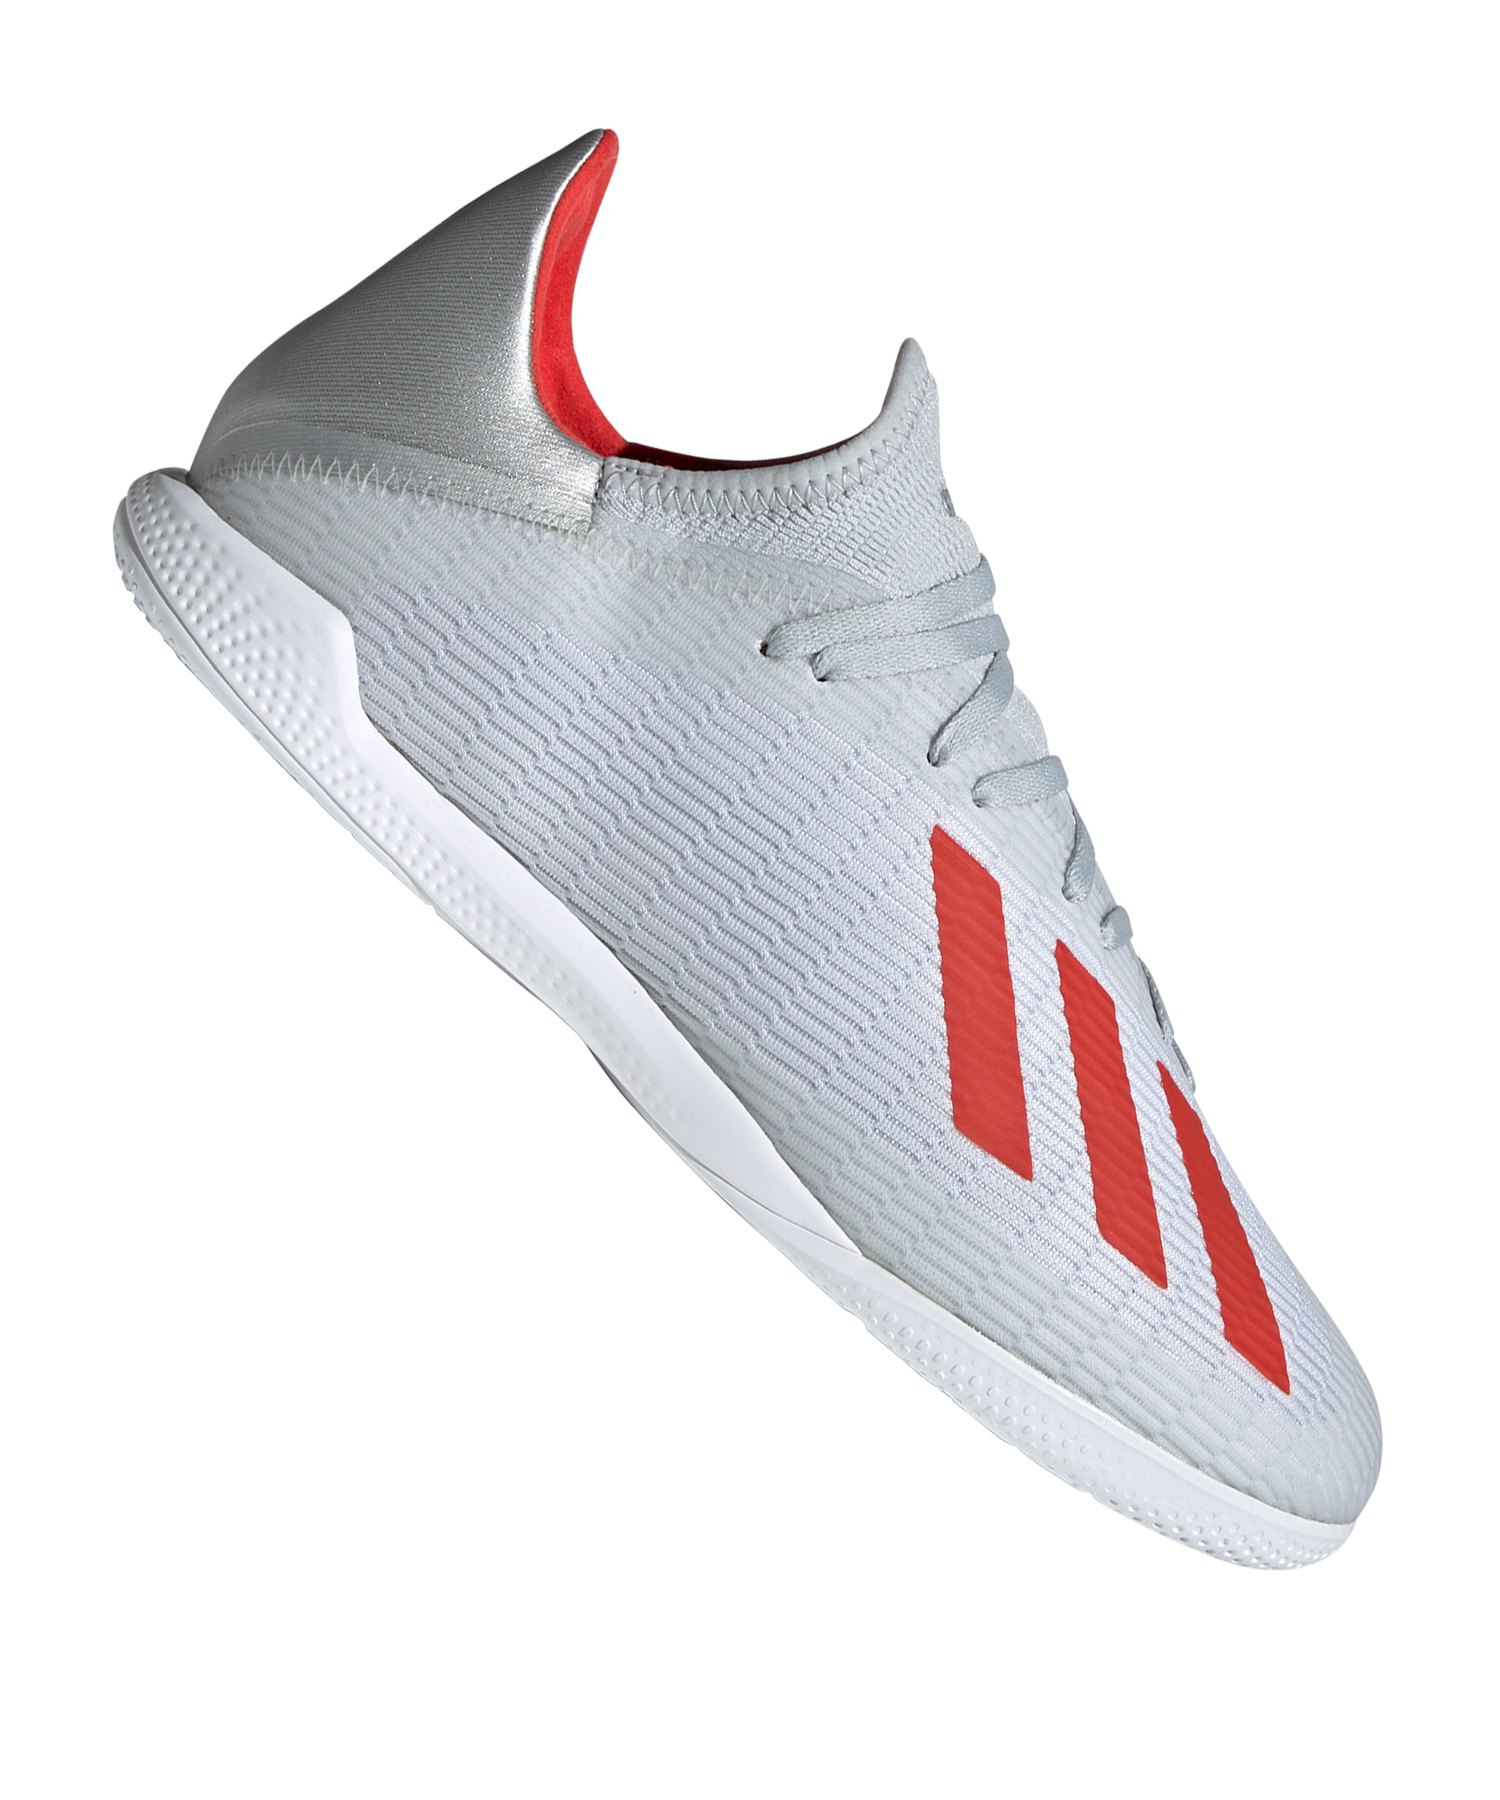 adidas X 19.3 IN Halle Silber Rot - Silber